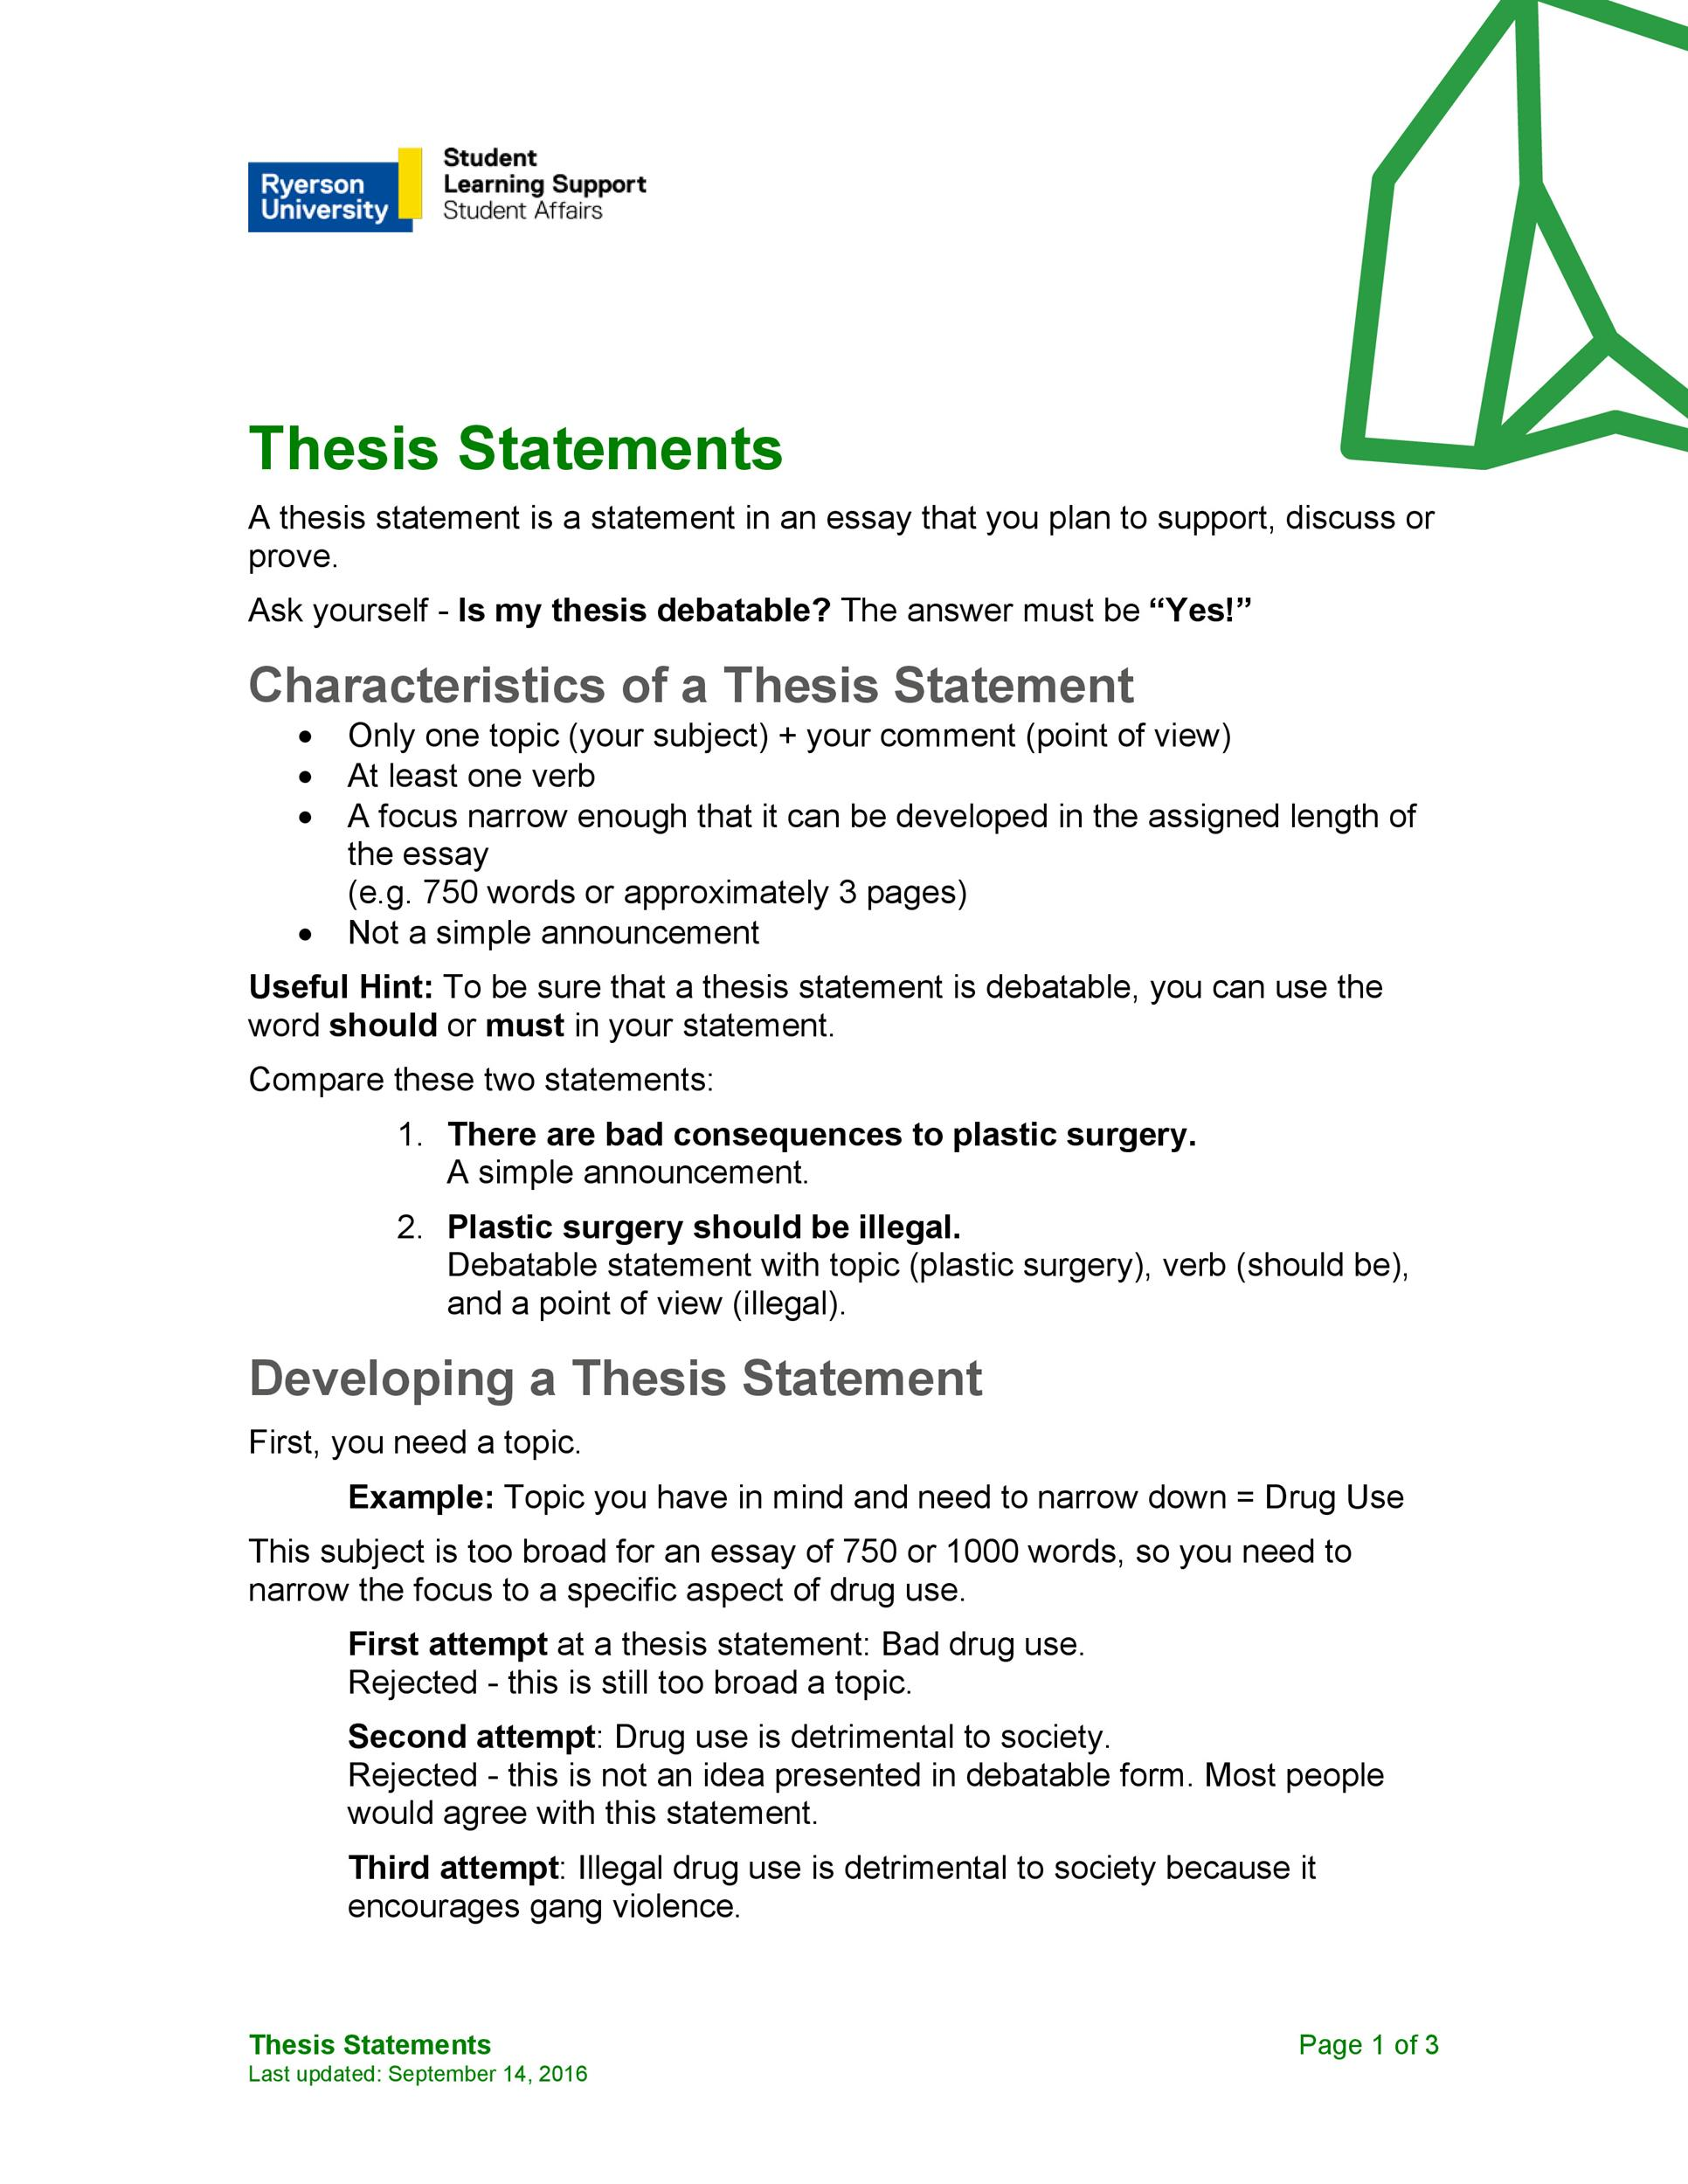 Free thesis statement template 19